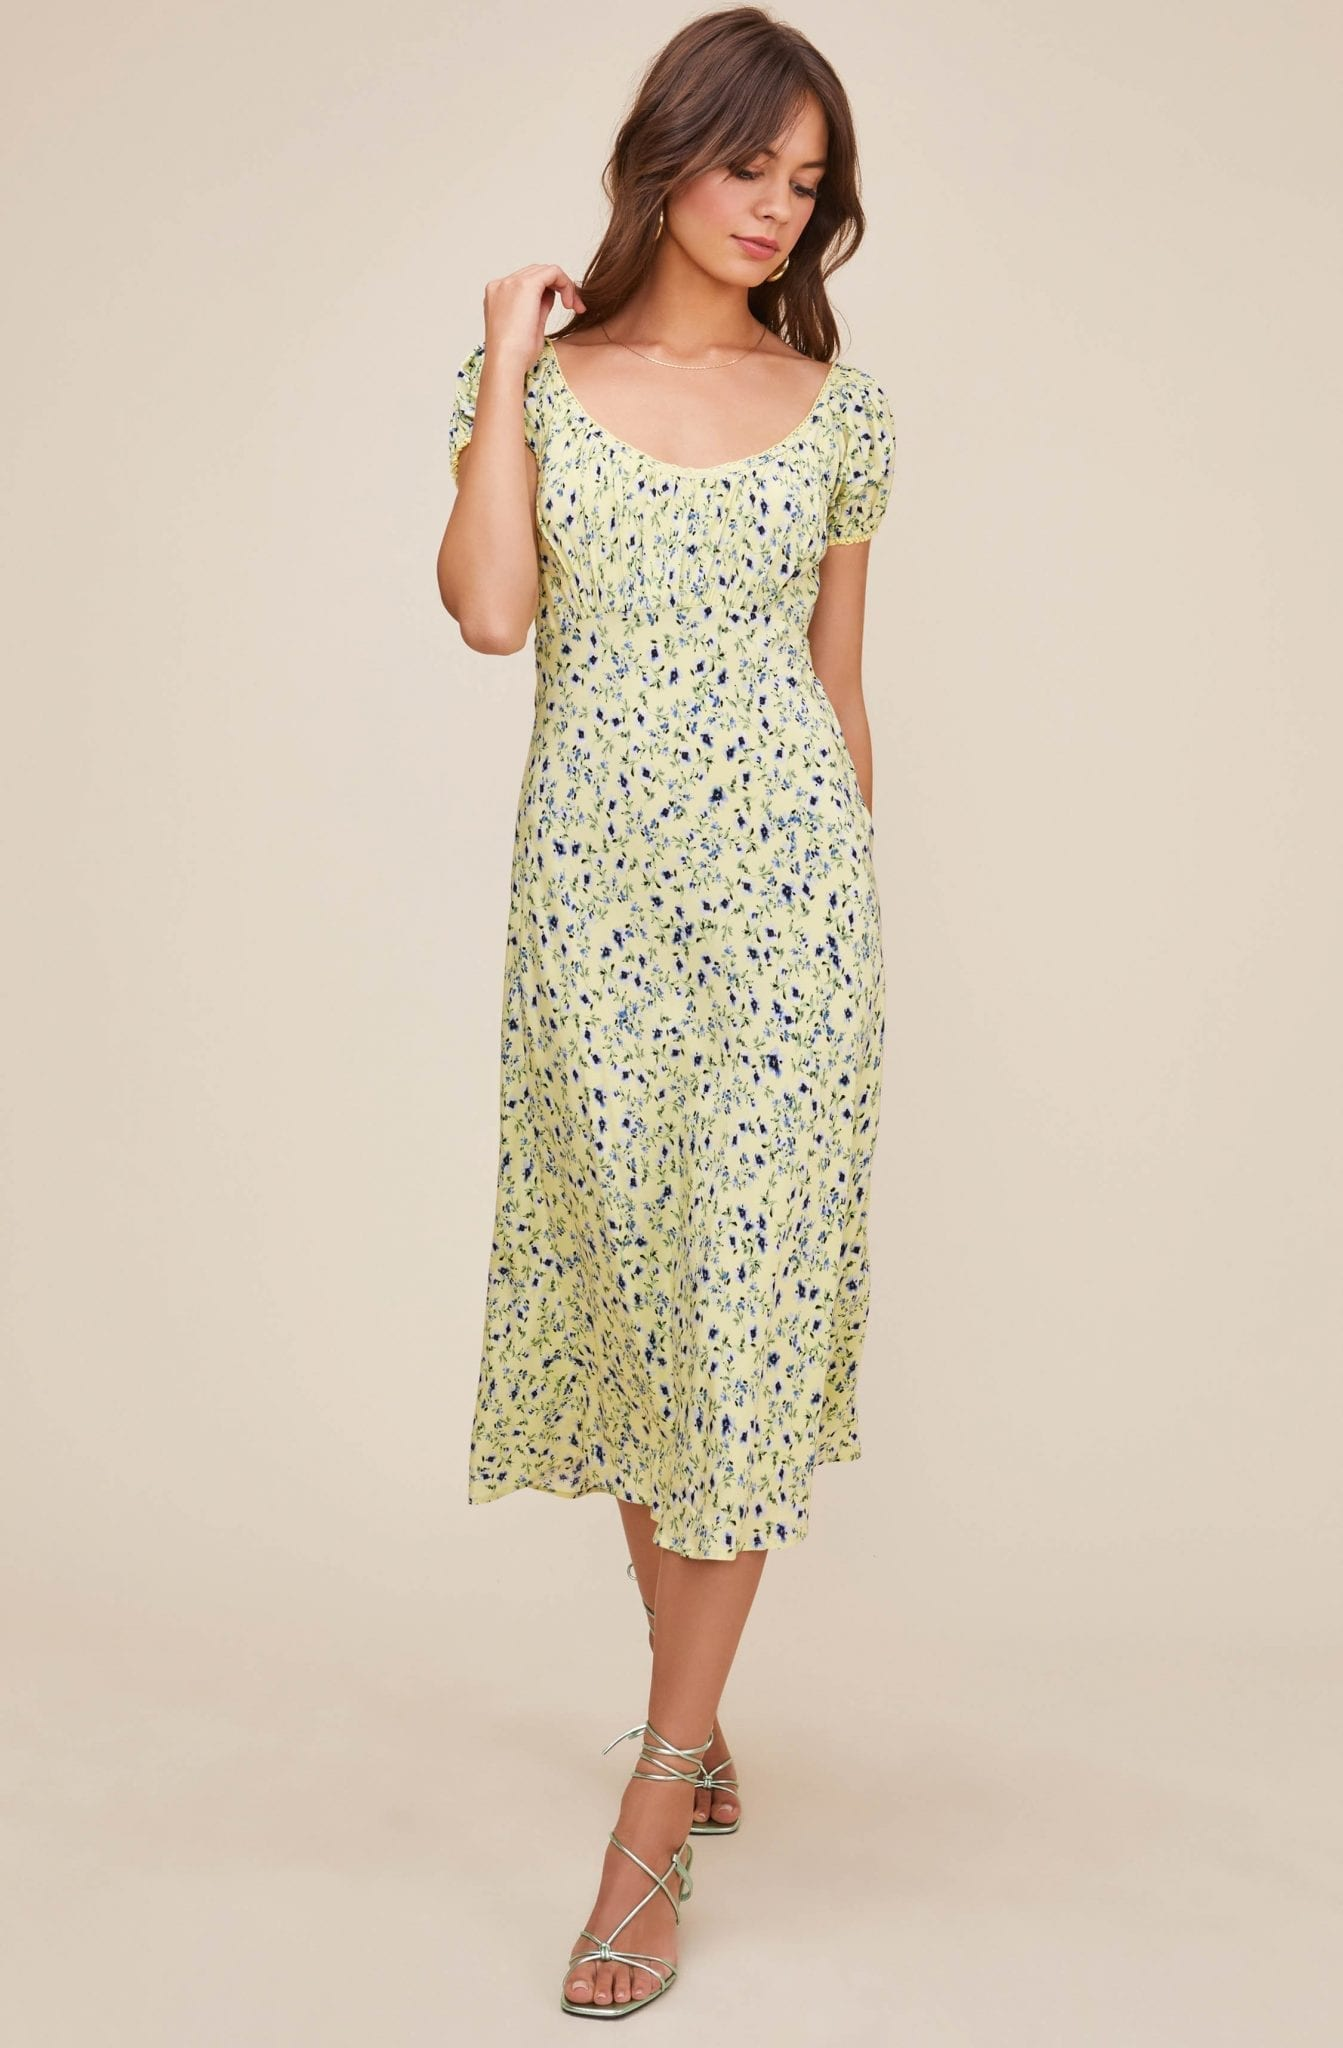 ASTRTHELABEL Caprice Floral Midi Dress